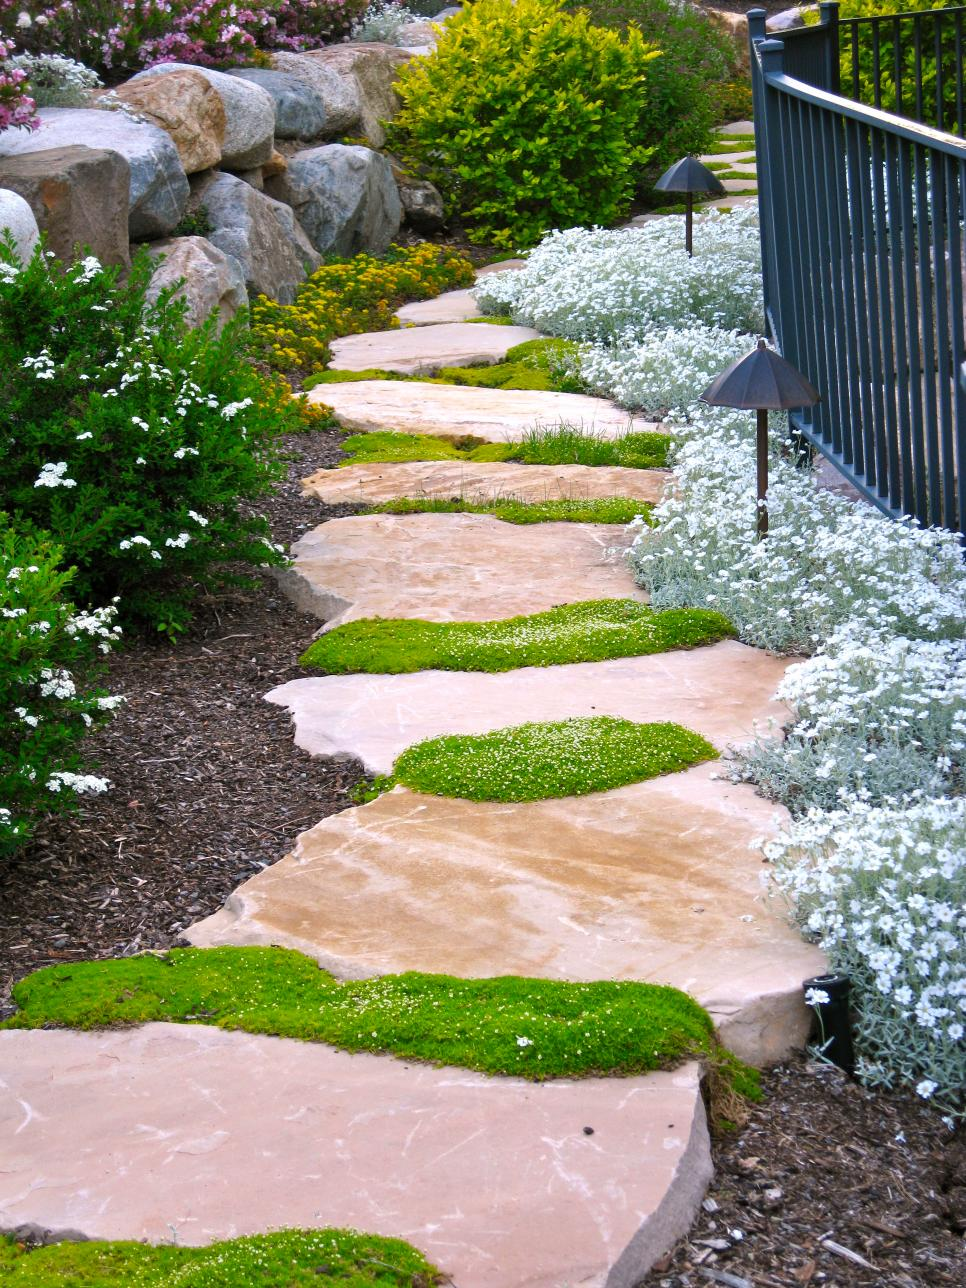 Landscaping With Irish Moss : Tips for creating an inviting walkway hgtv